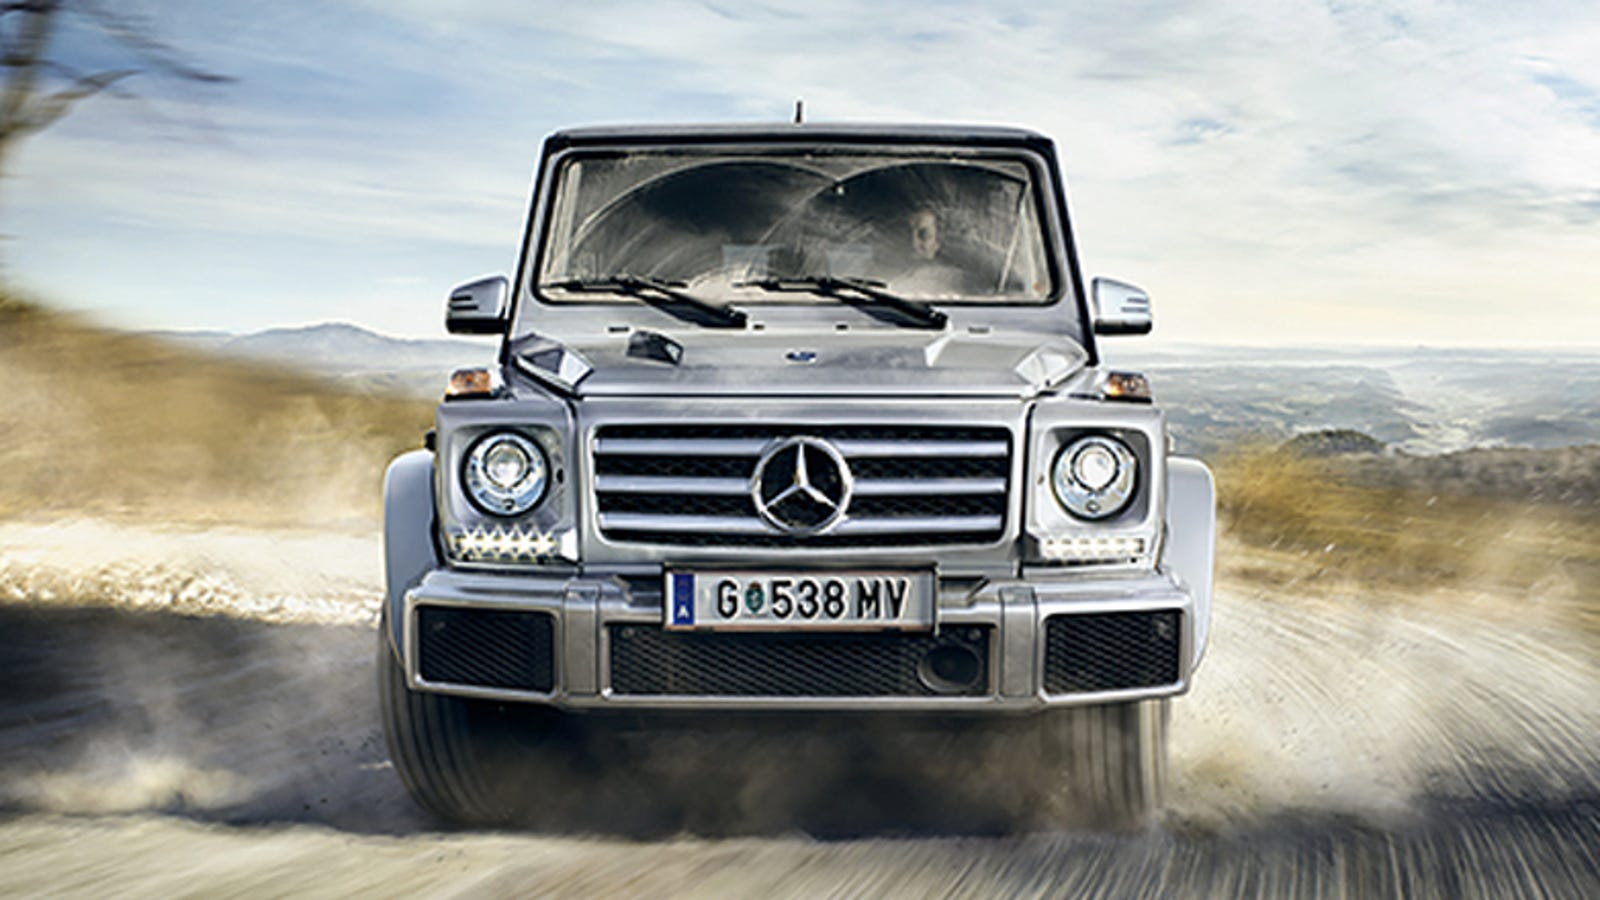 Mercedes G Class The Ultimate Buyers Guide Engine Wiring Harness Rebuild Service For Mercedesbenz